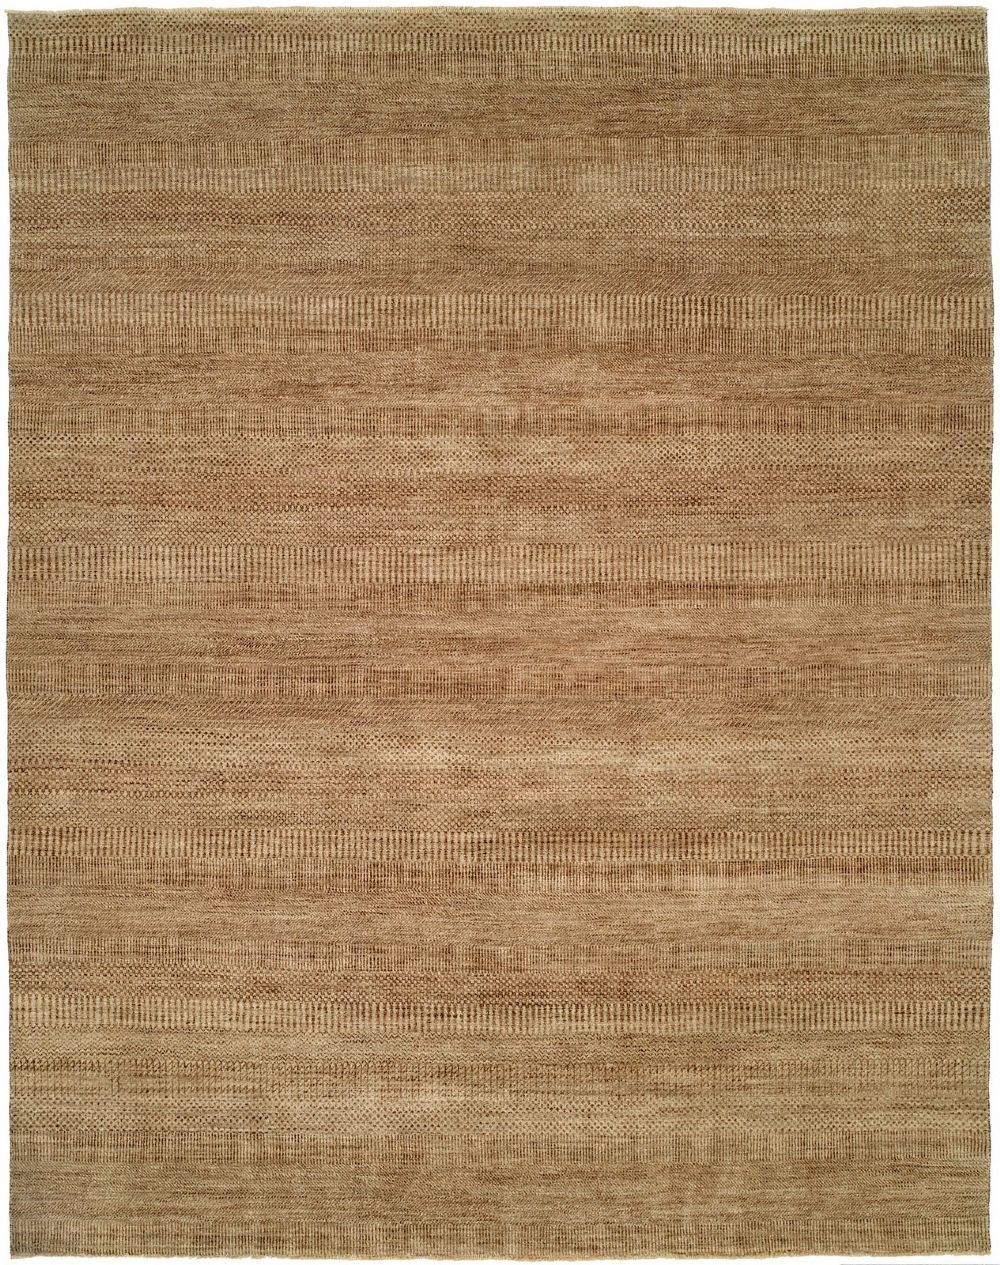 shalom brothers illusions solid/striped area rug collection